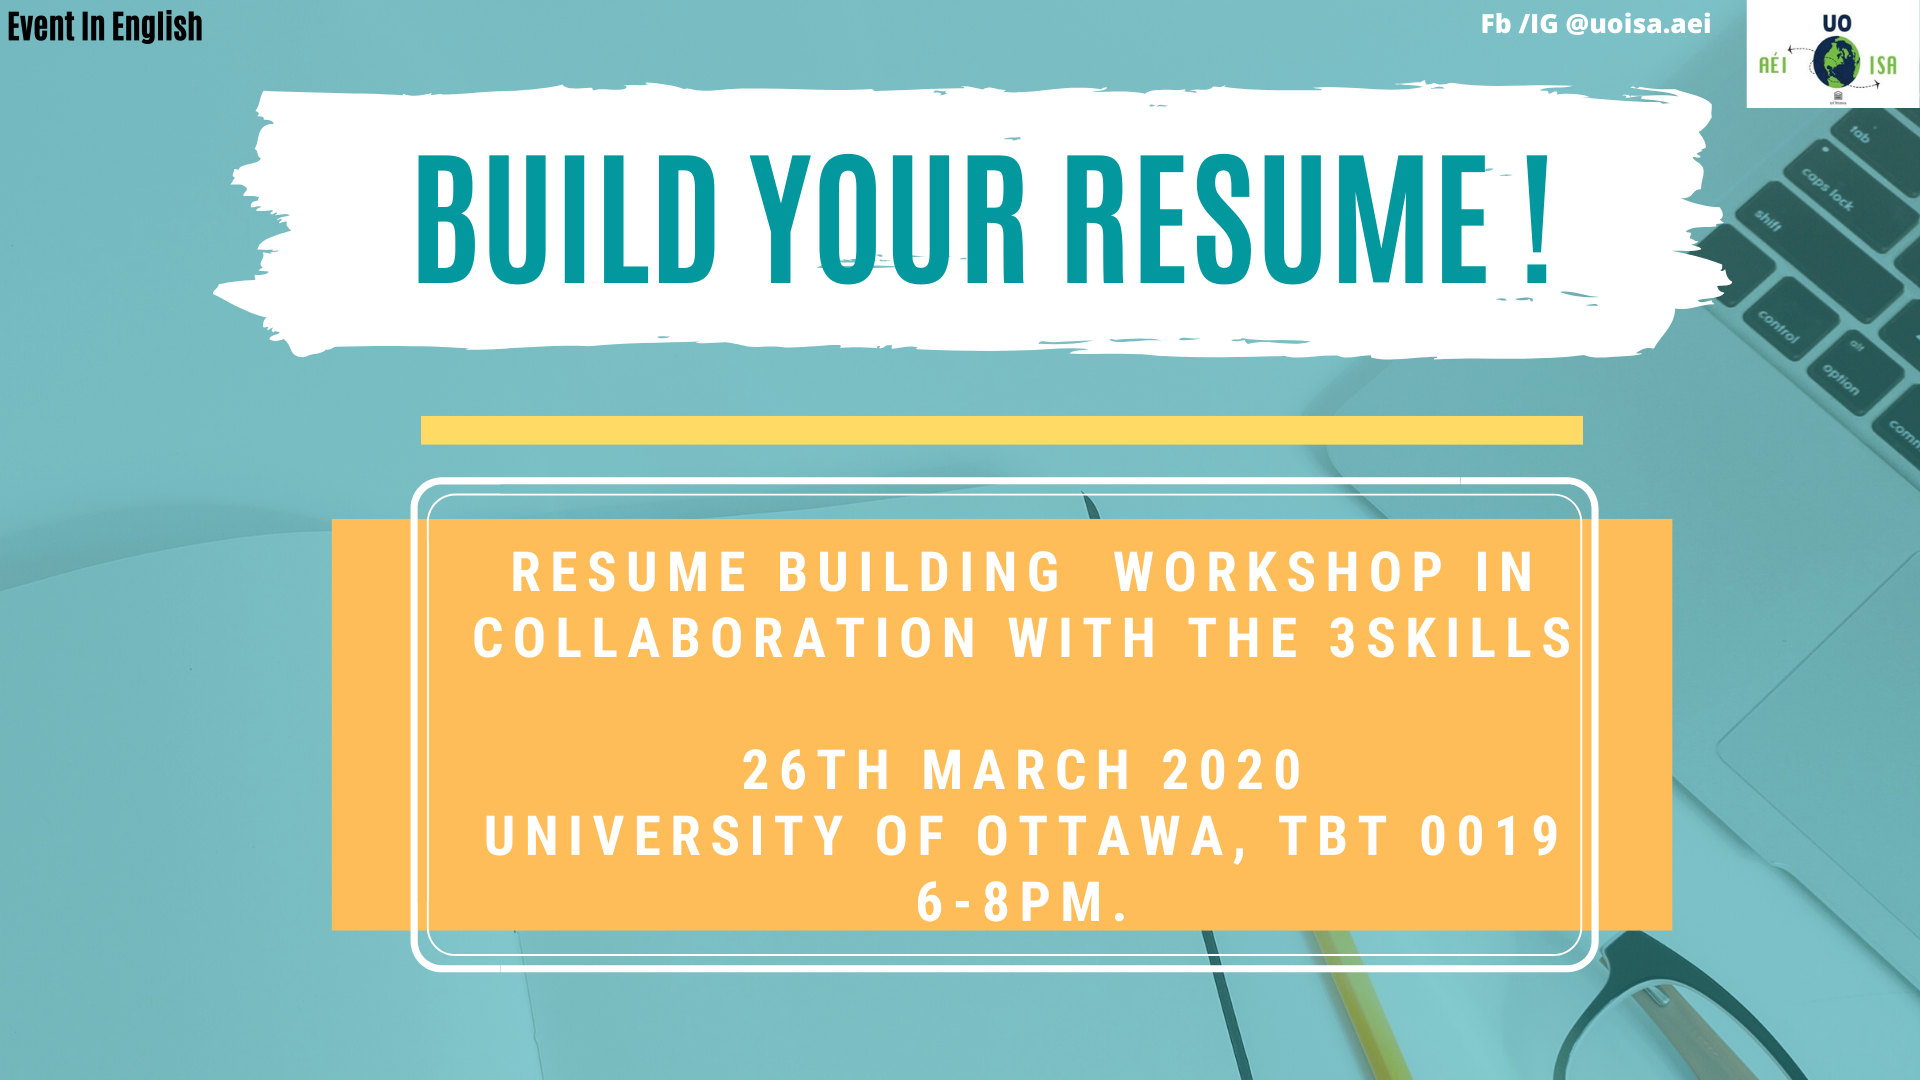 Free Resume Building Workshop By The3skills 26 Mar 2020